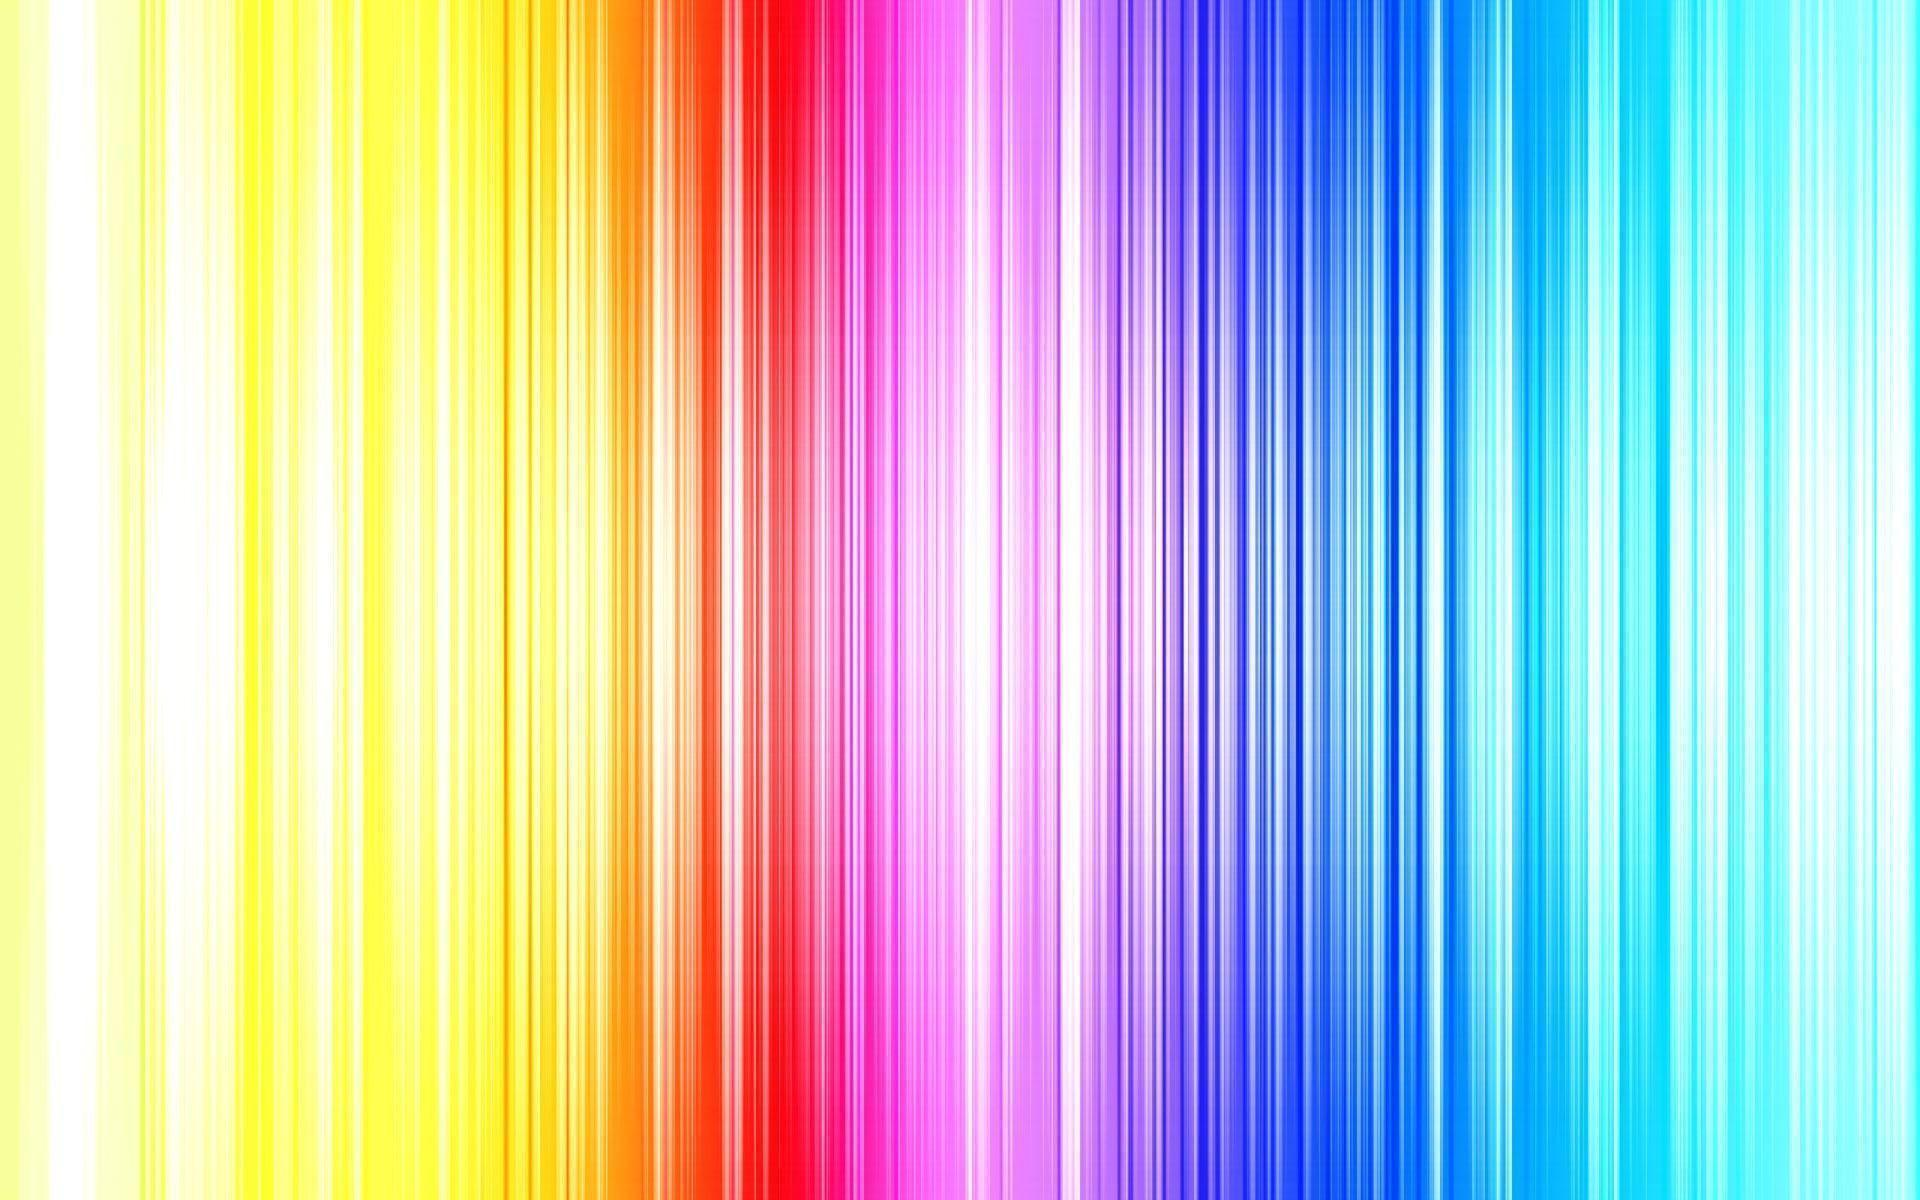 Bright neon colored backgrounds